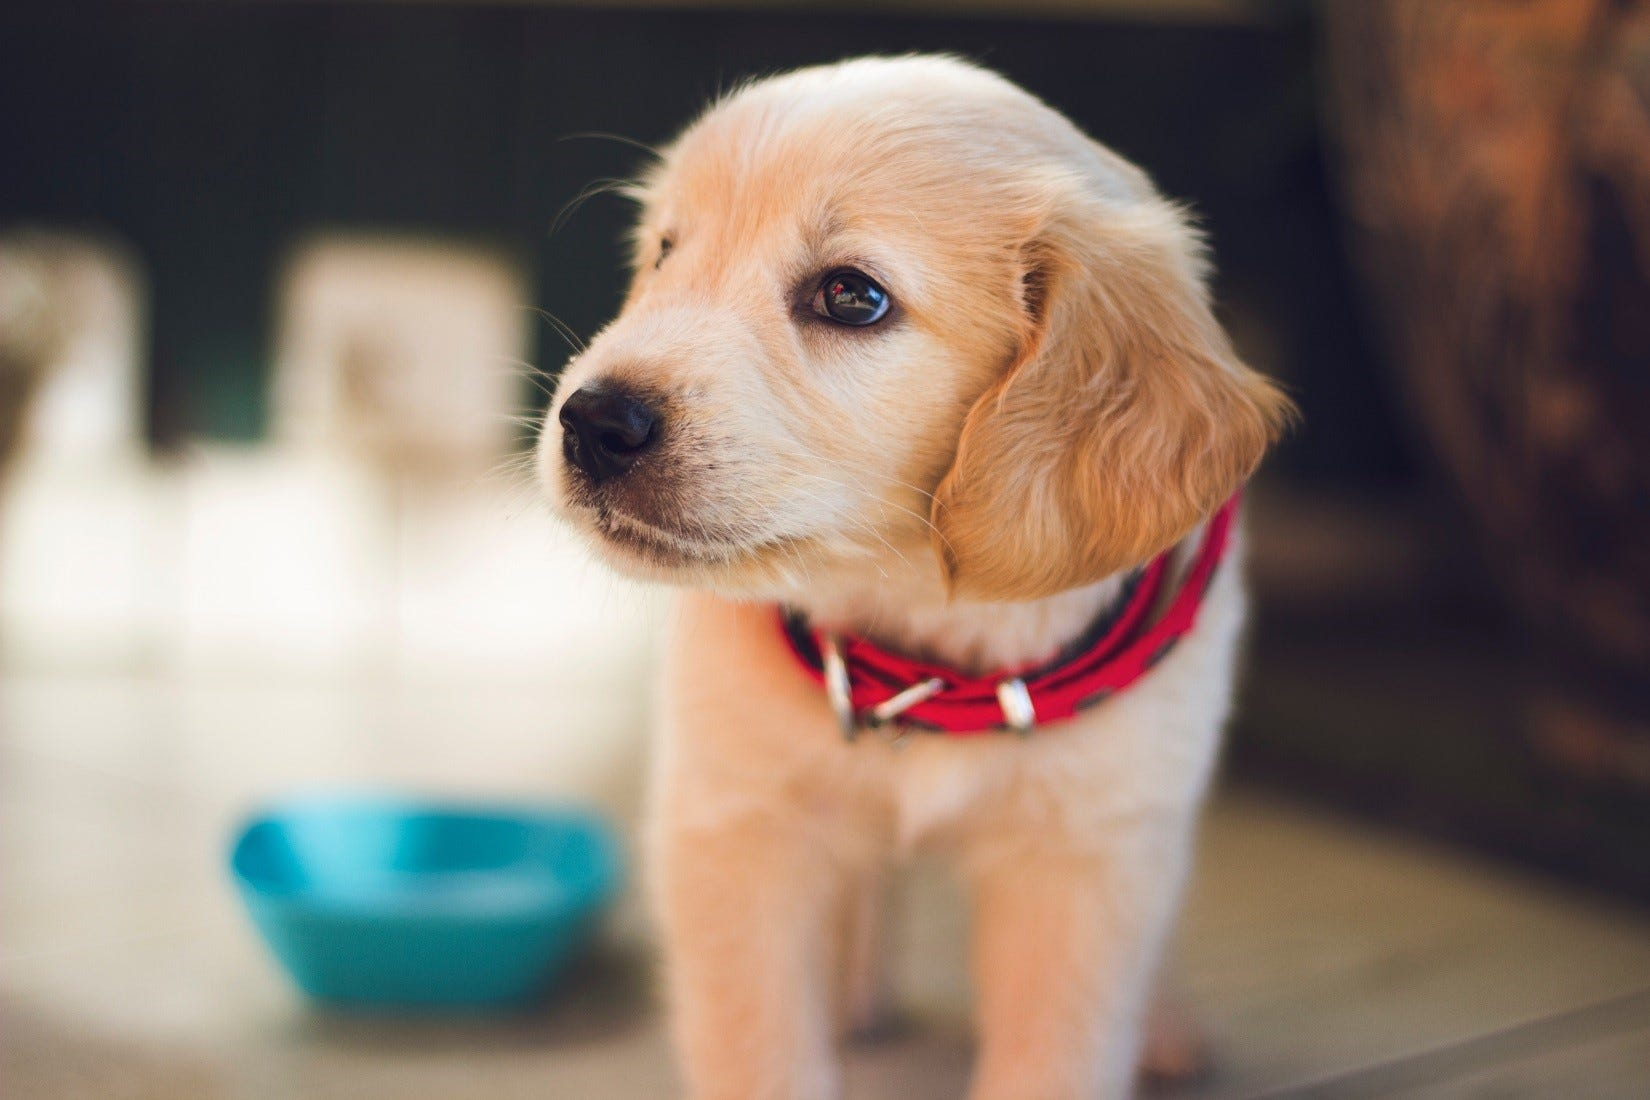 A puppy with a red collar